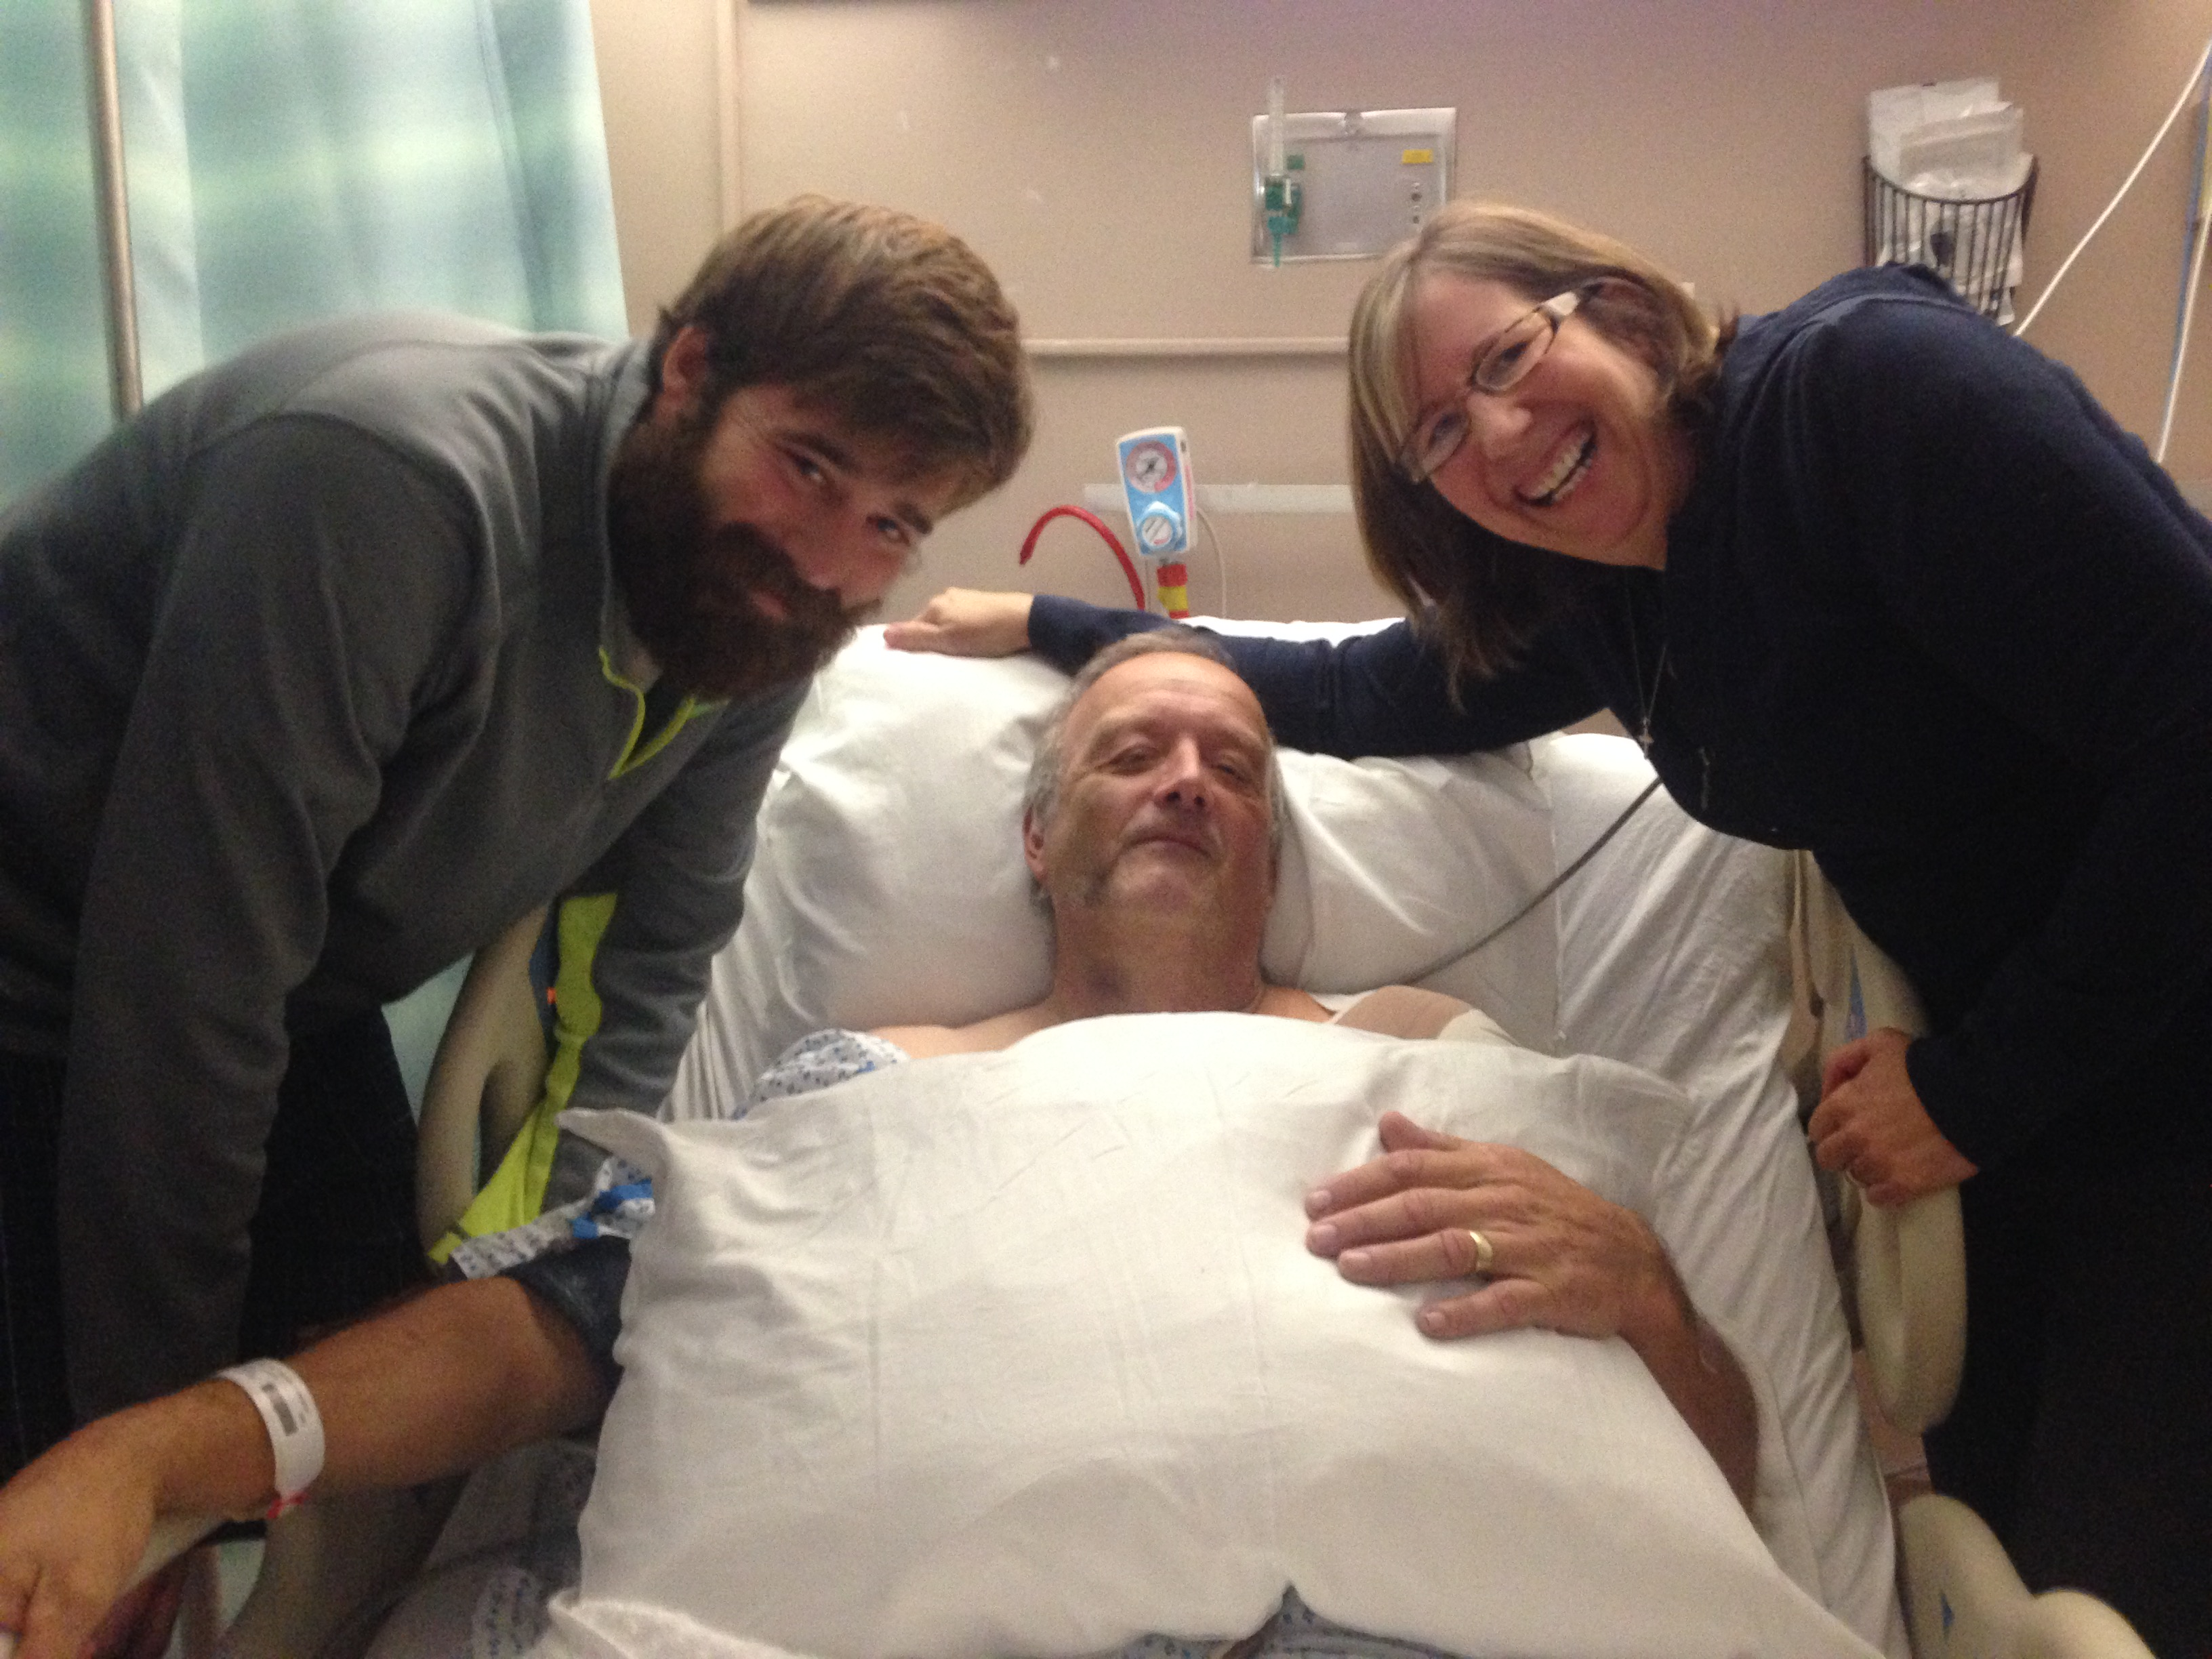 On the road to recovery, Lloyd ssssss with his son, Drew, and wife Debbie.